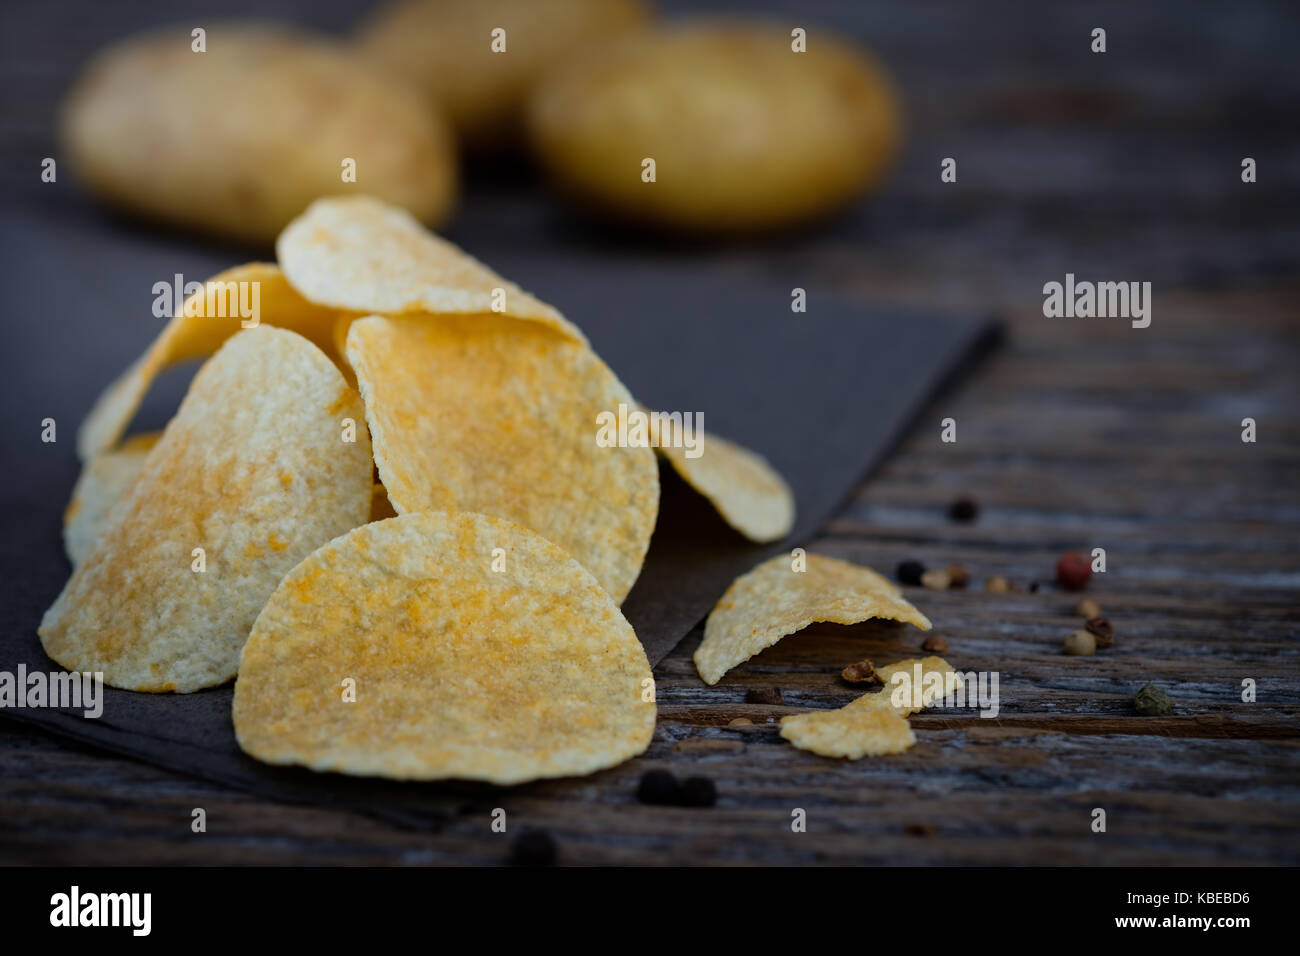 Potato chips on wooden background Choose focus point. - Stock Image